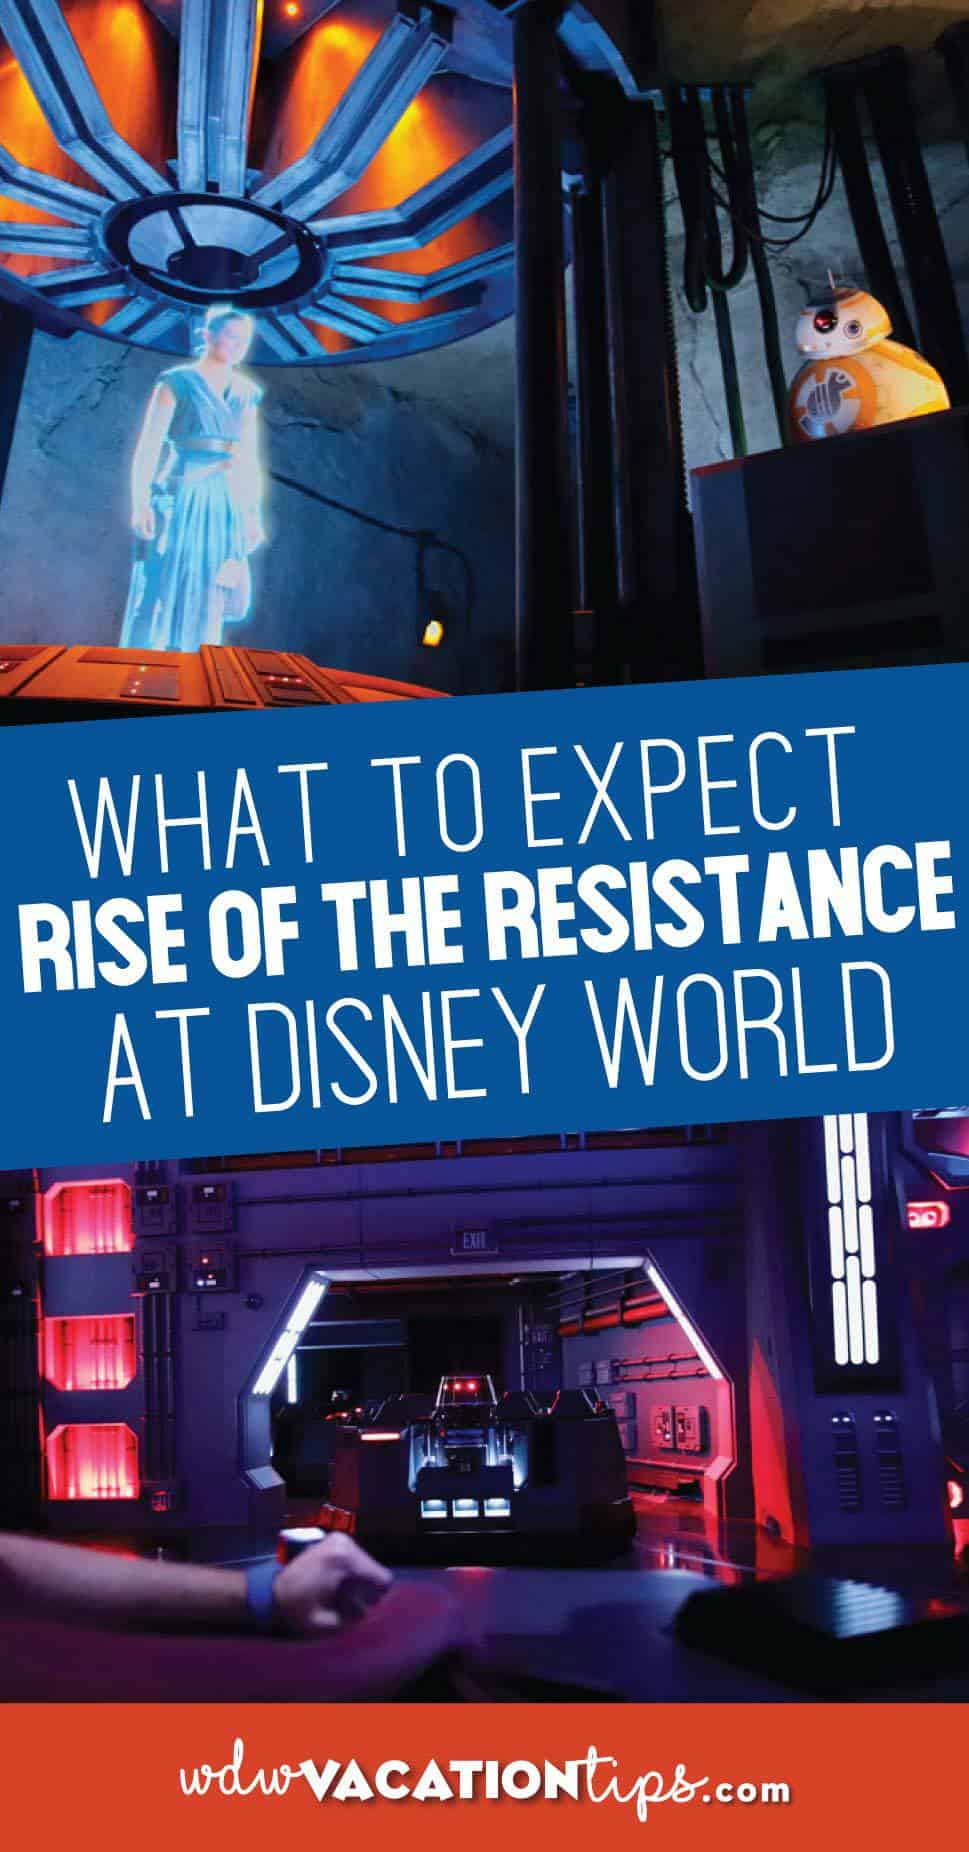 Details on Rise of the Resistance Ride